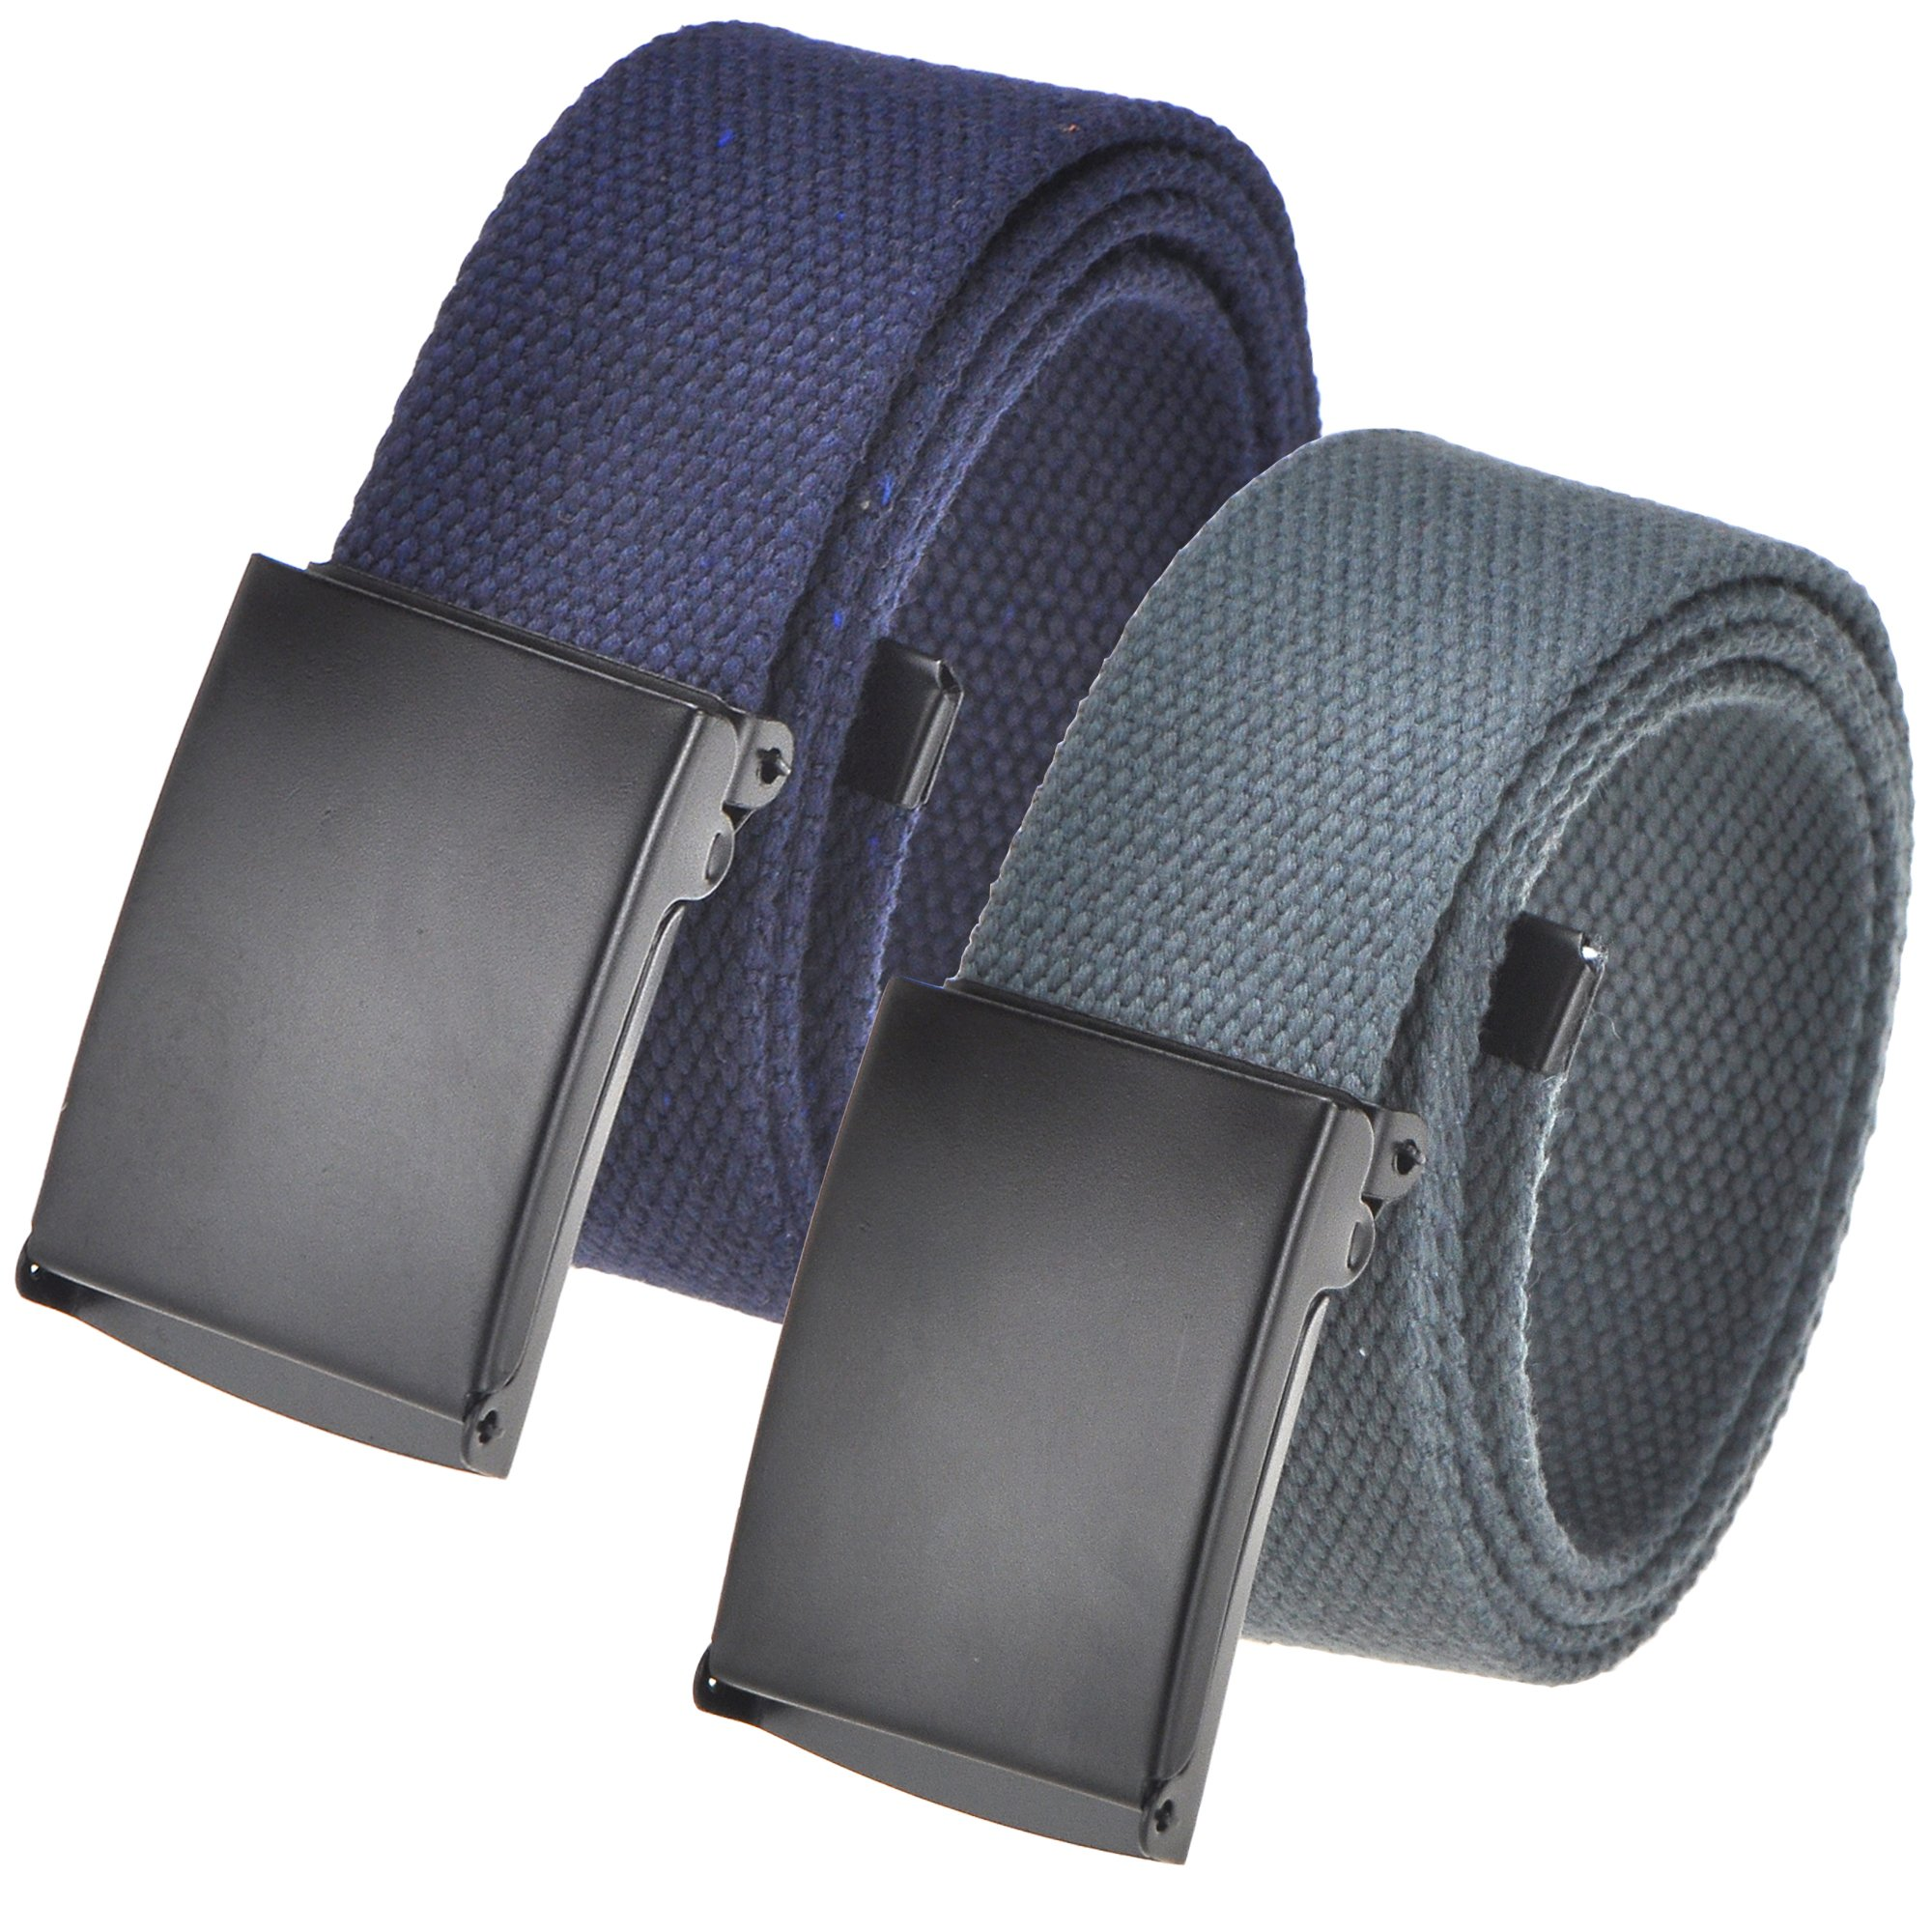 Cut To Fit Canvas Web Belt Size Up to 52'' with Flip-Top Solid Black Military Buckle (16 Color and Combo Pack Options) (2 Pack Navy/Dark Grey)